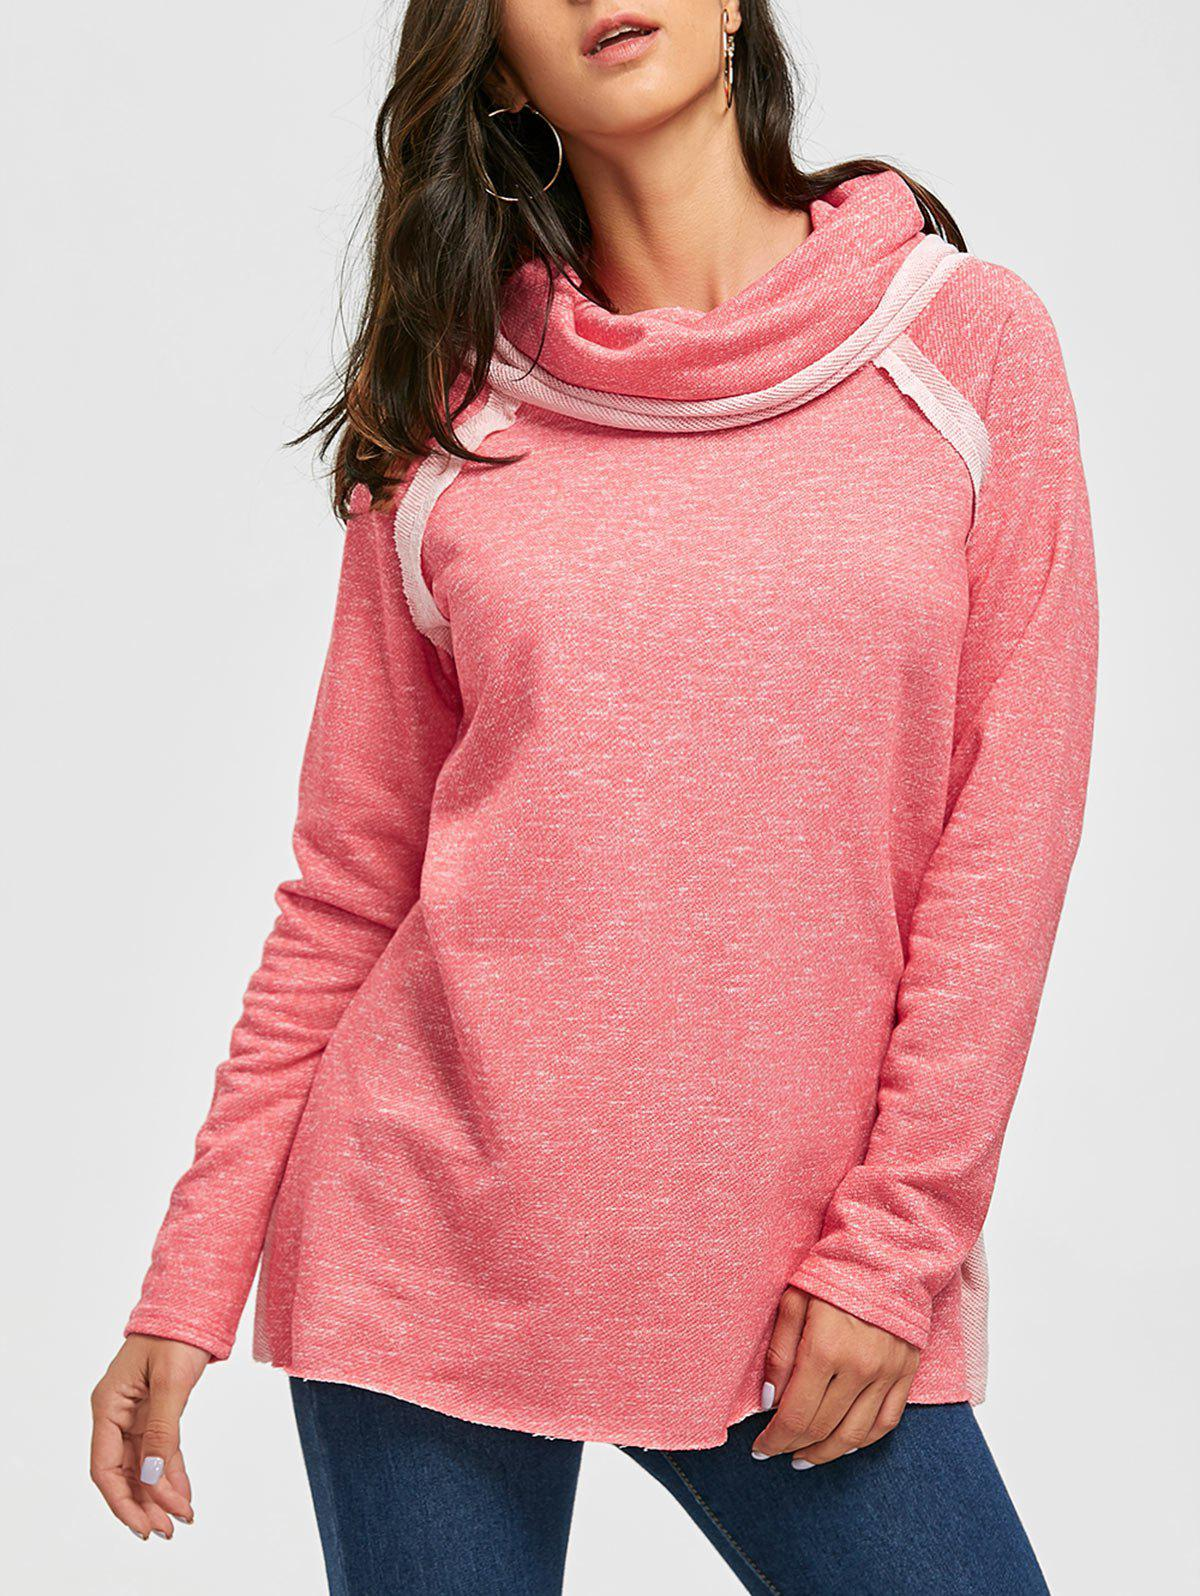 Cowl Neck Loose Fitting Raglan Sweat à manches - ROSE PÂLE 2XL